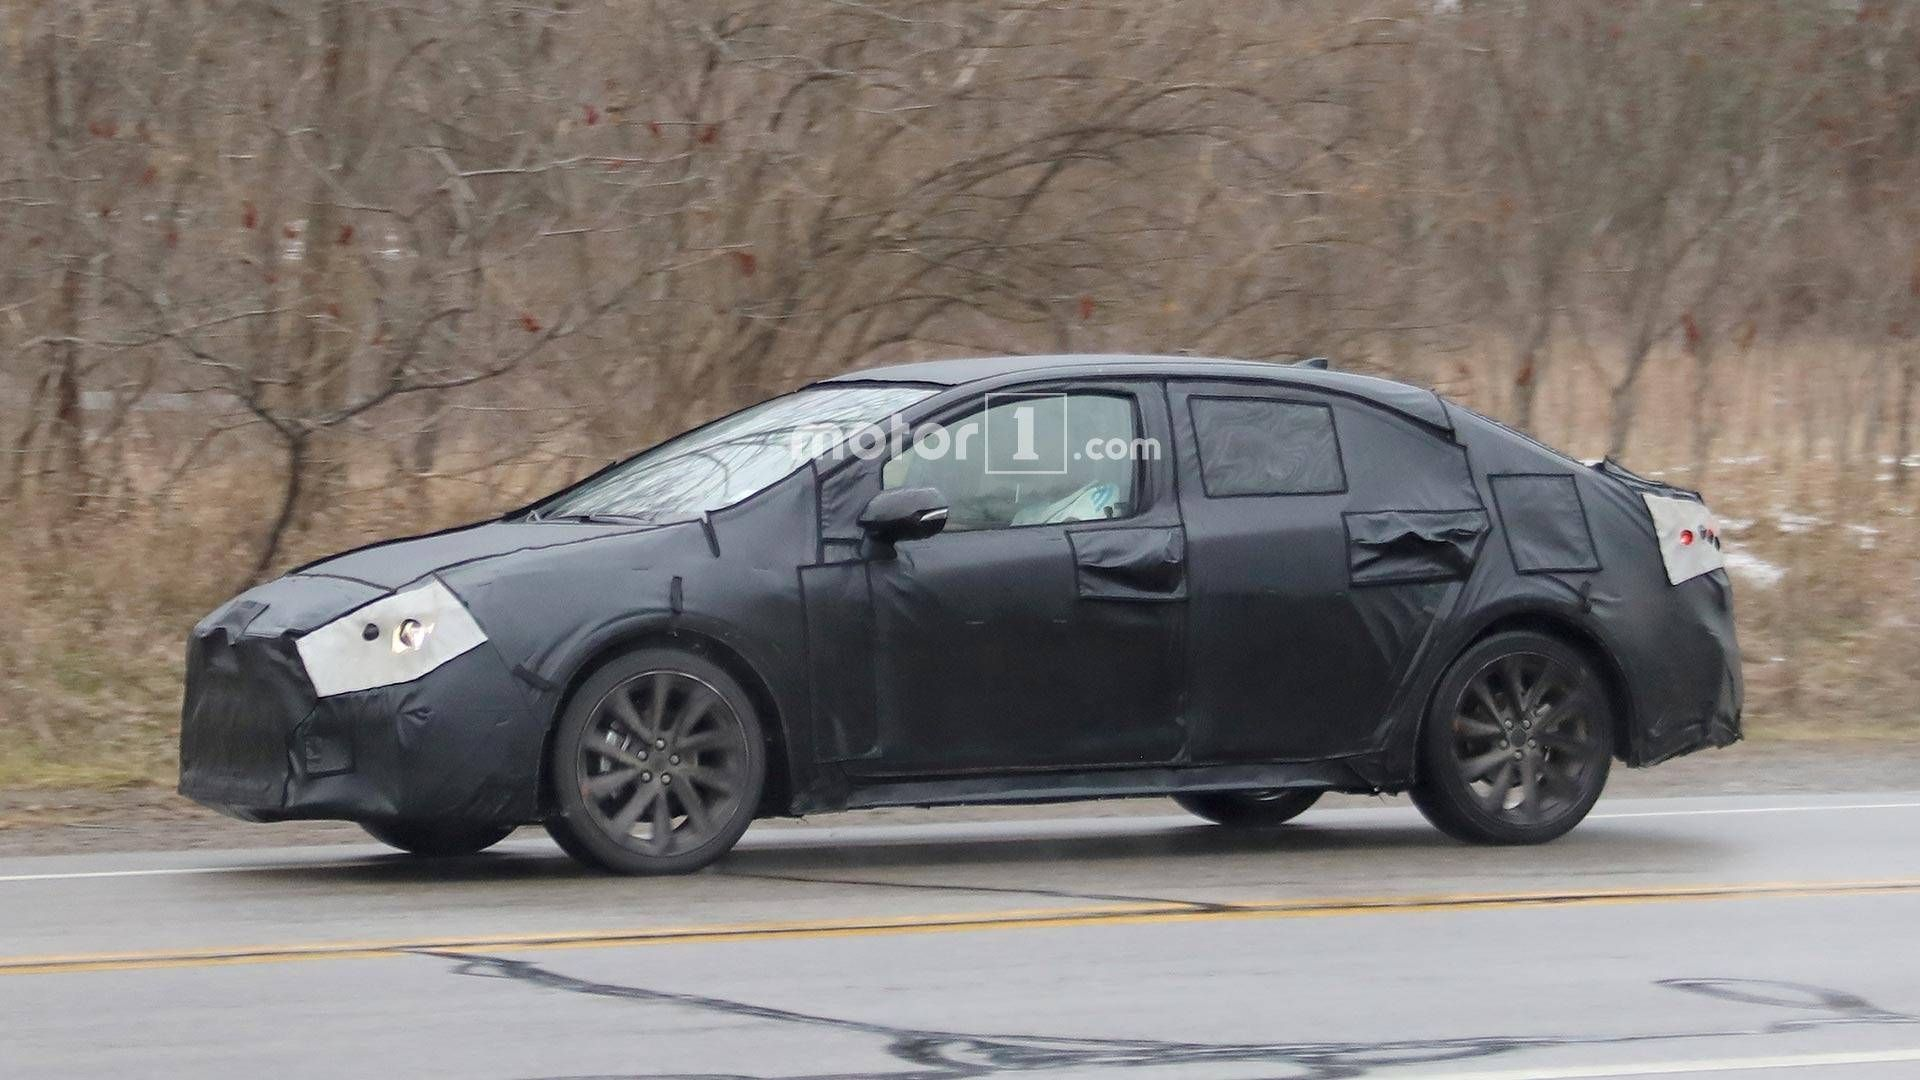 The New Toyota Avensis 2020 Spy Shots Performance Toyota Avensis